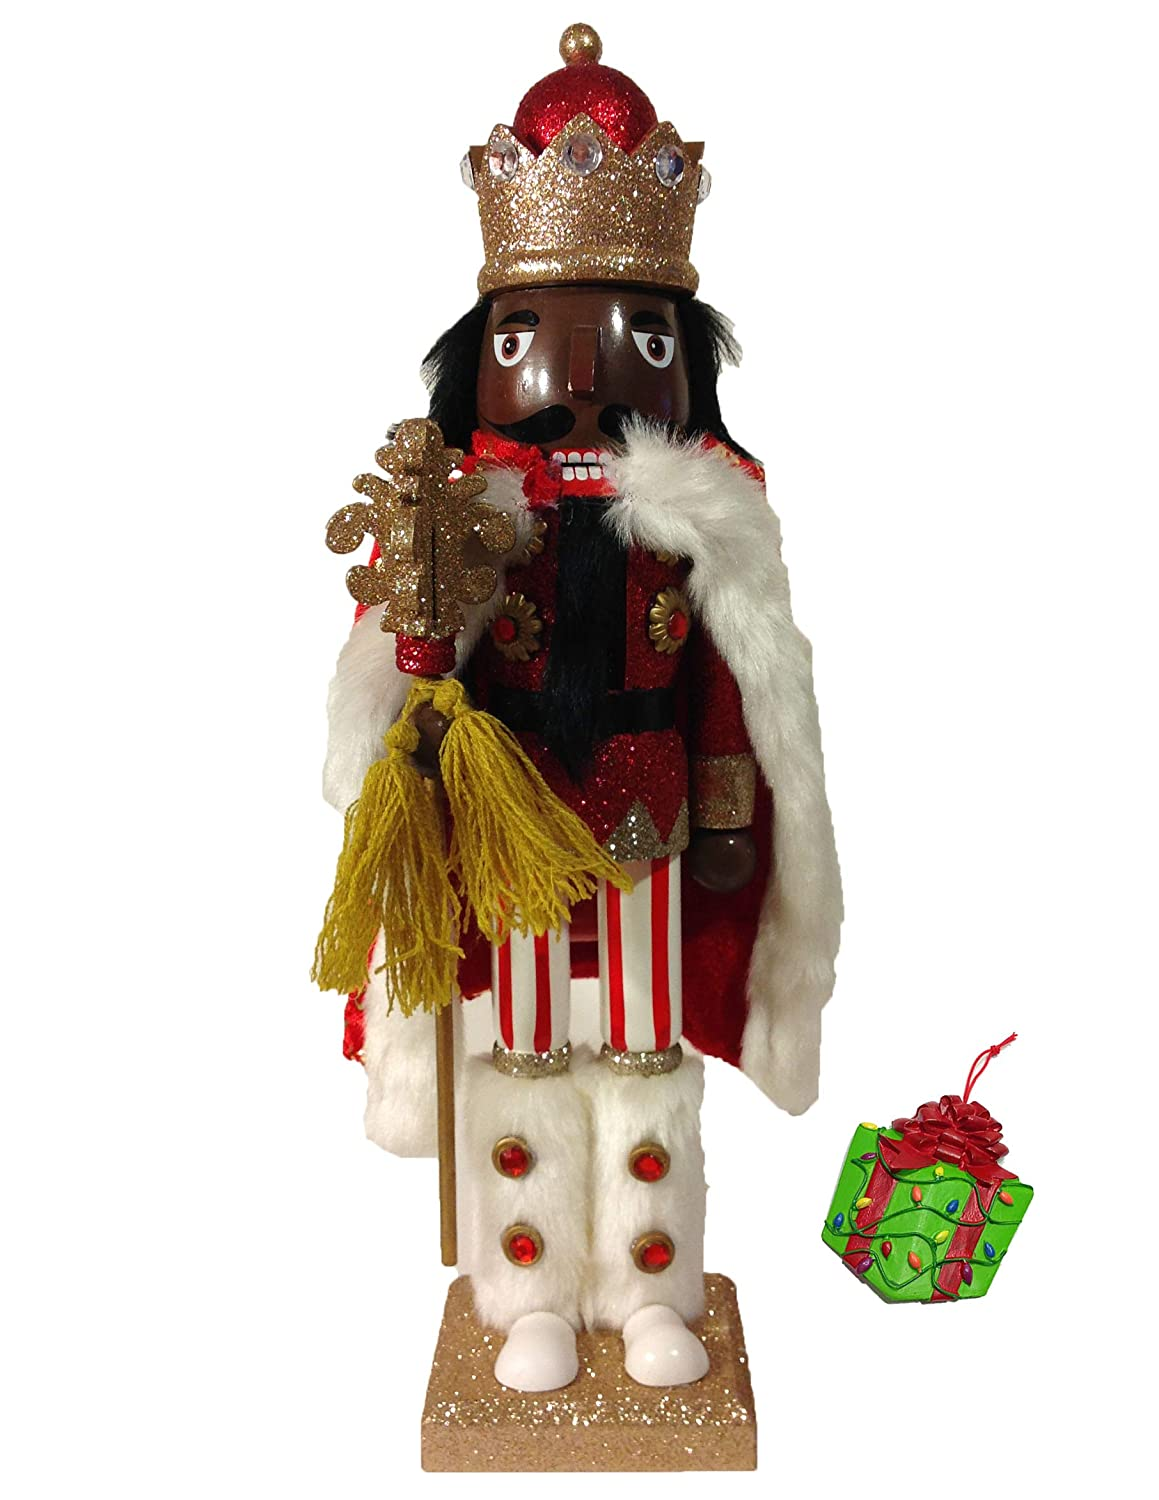 Distinctive Designs African American Winter King Large Unique Decorative Holiday Season Wooden Christmas Nutcracker & Bonus Tree Ornament